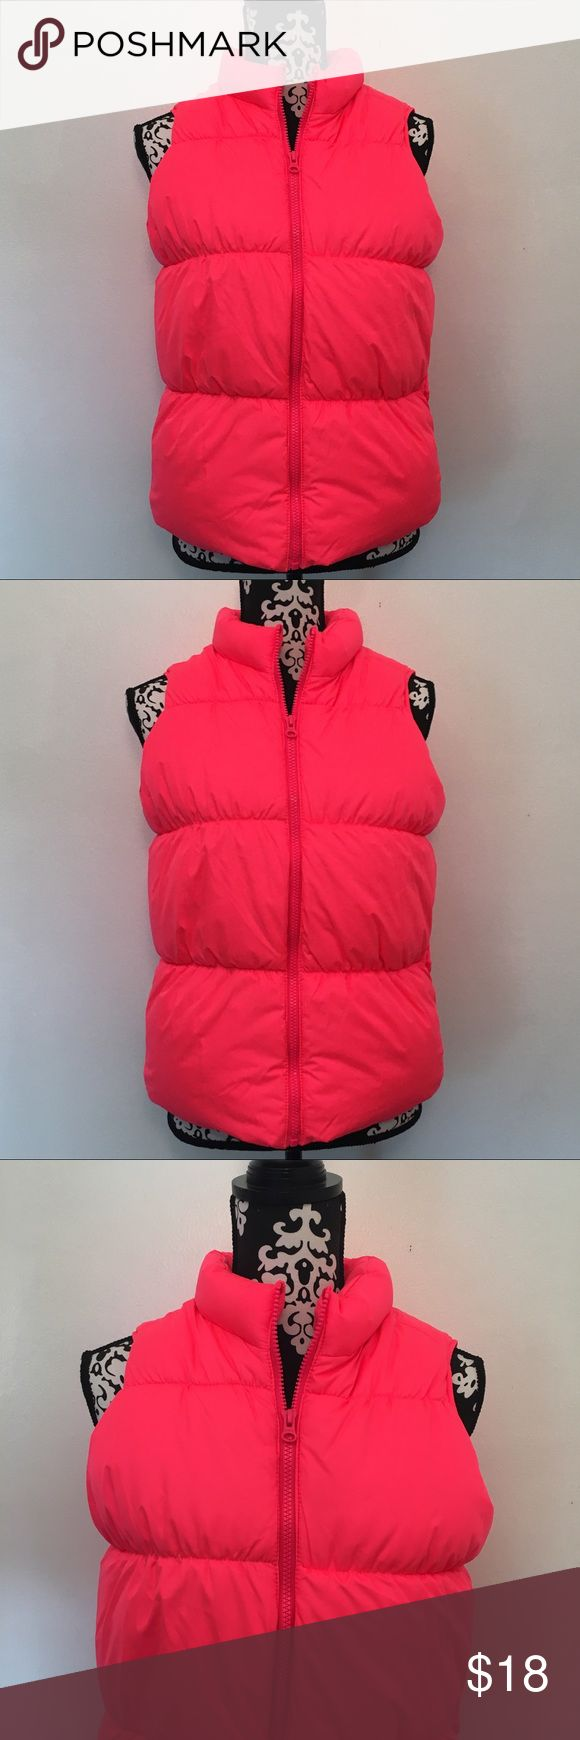 Old Navy Vest Old Navy Vest. Girls size 14 Plus. In excellent condition with no flaws! Bright vibrant color! Old Navy Jackets & Coats